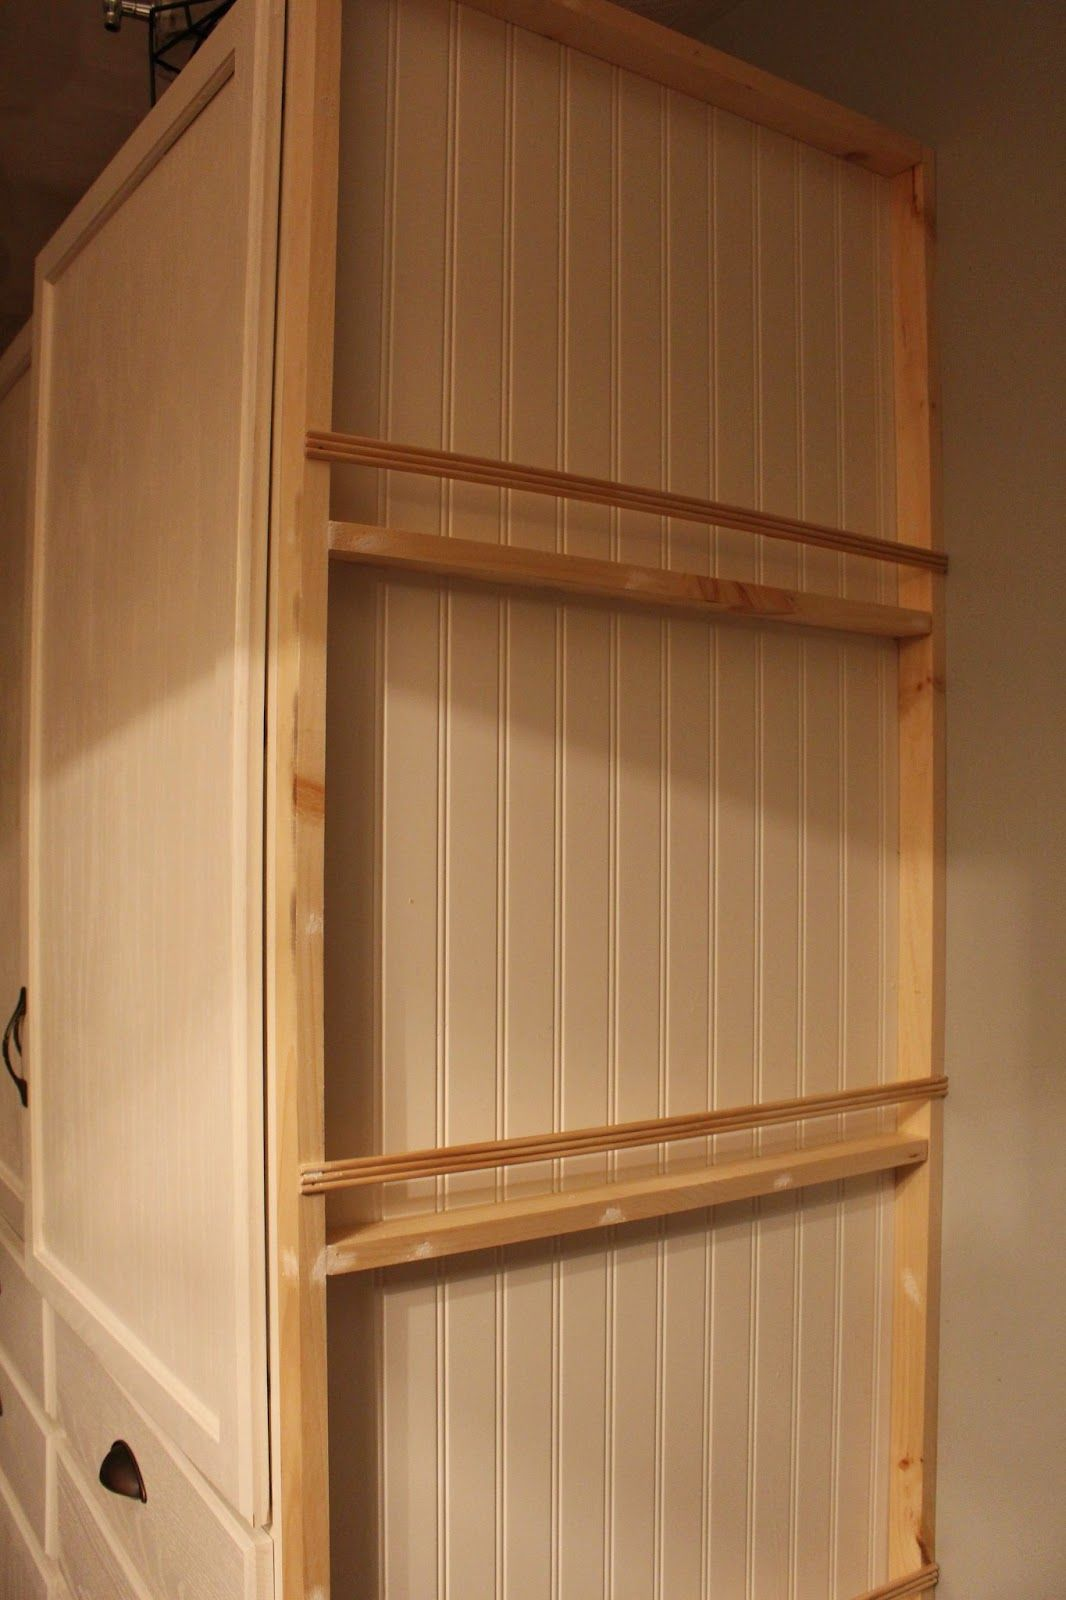 My DIY Kitchen: Plate Rack Wall - Made by Carli